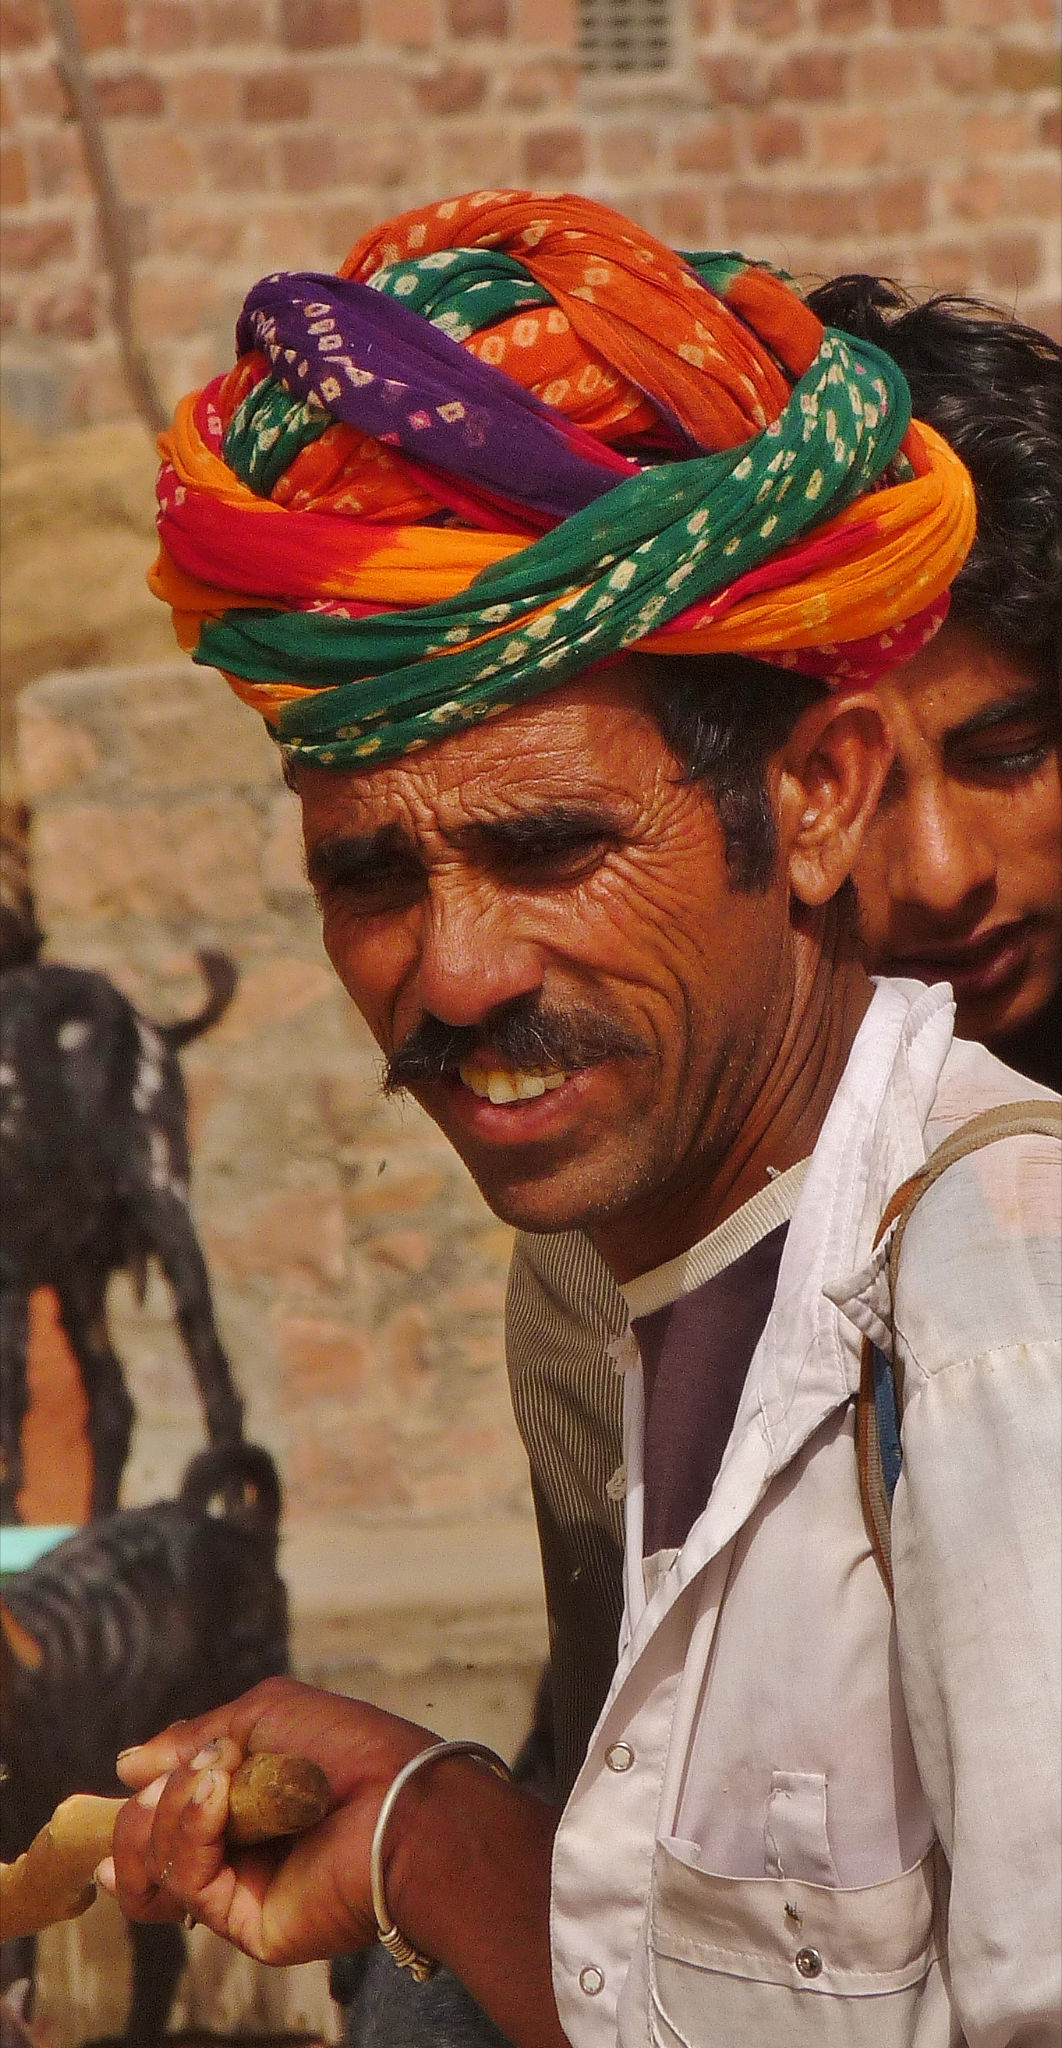 A Rajasthani Rural Farmer In Typical Rajasthan Turban